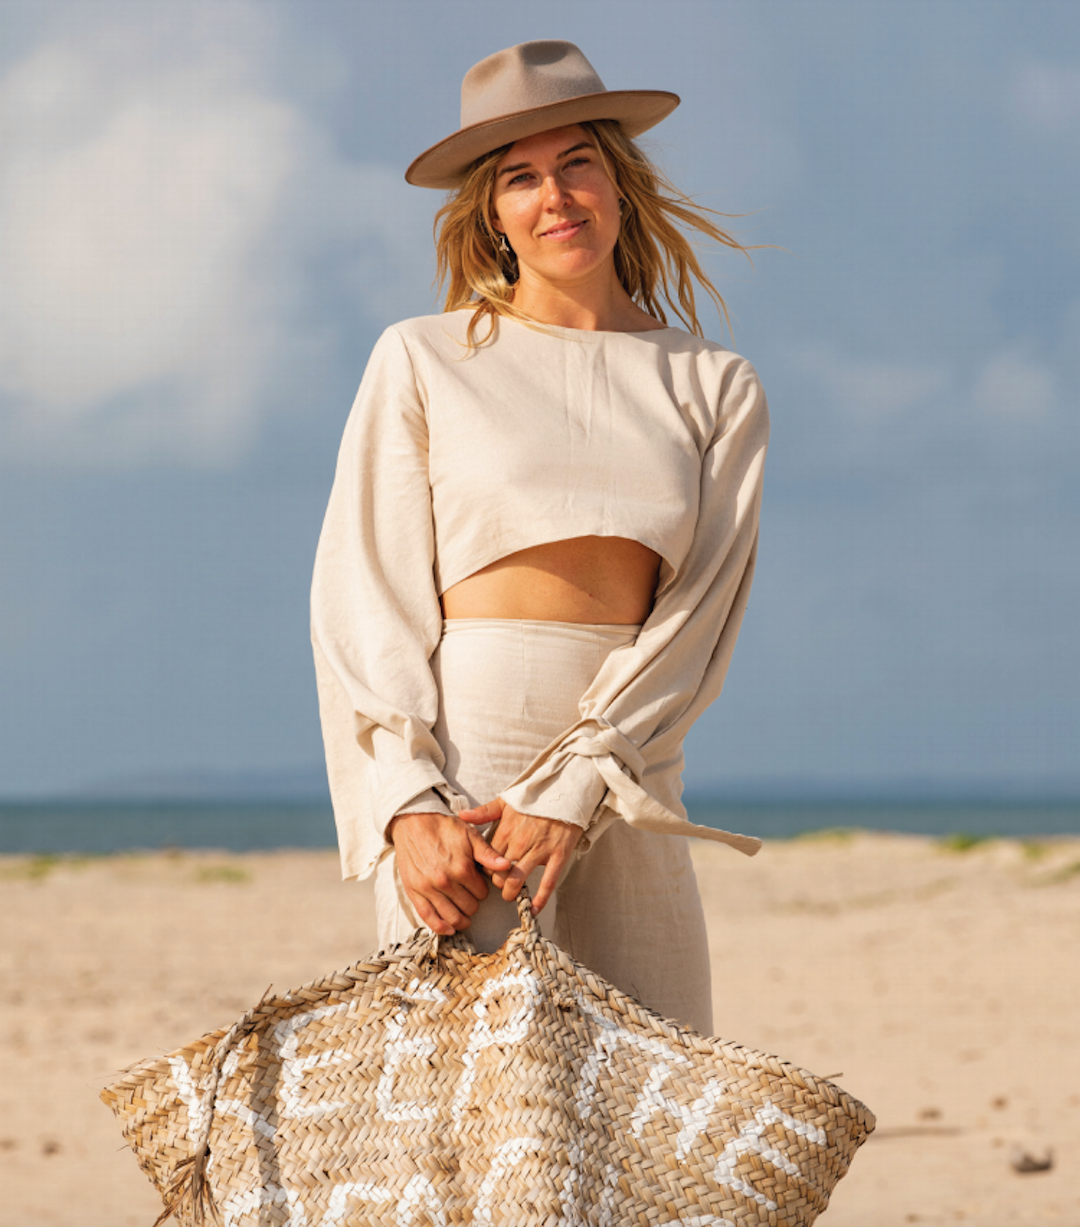 A woman stands smiling on the beach wearing a wide-brimmed hat holding a wicker bag.